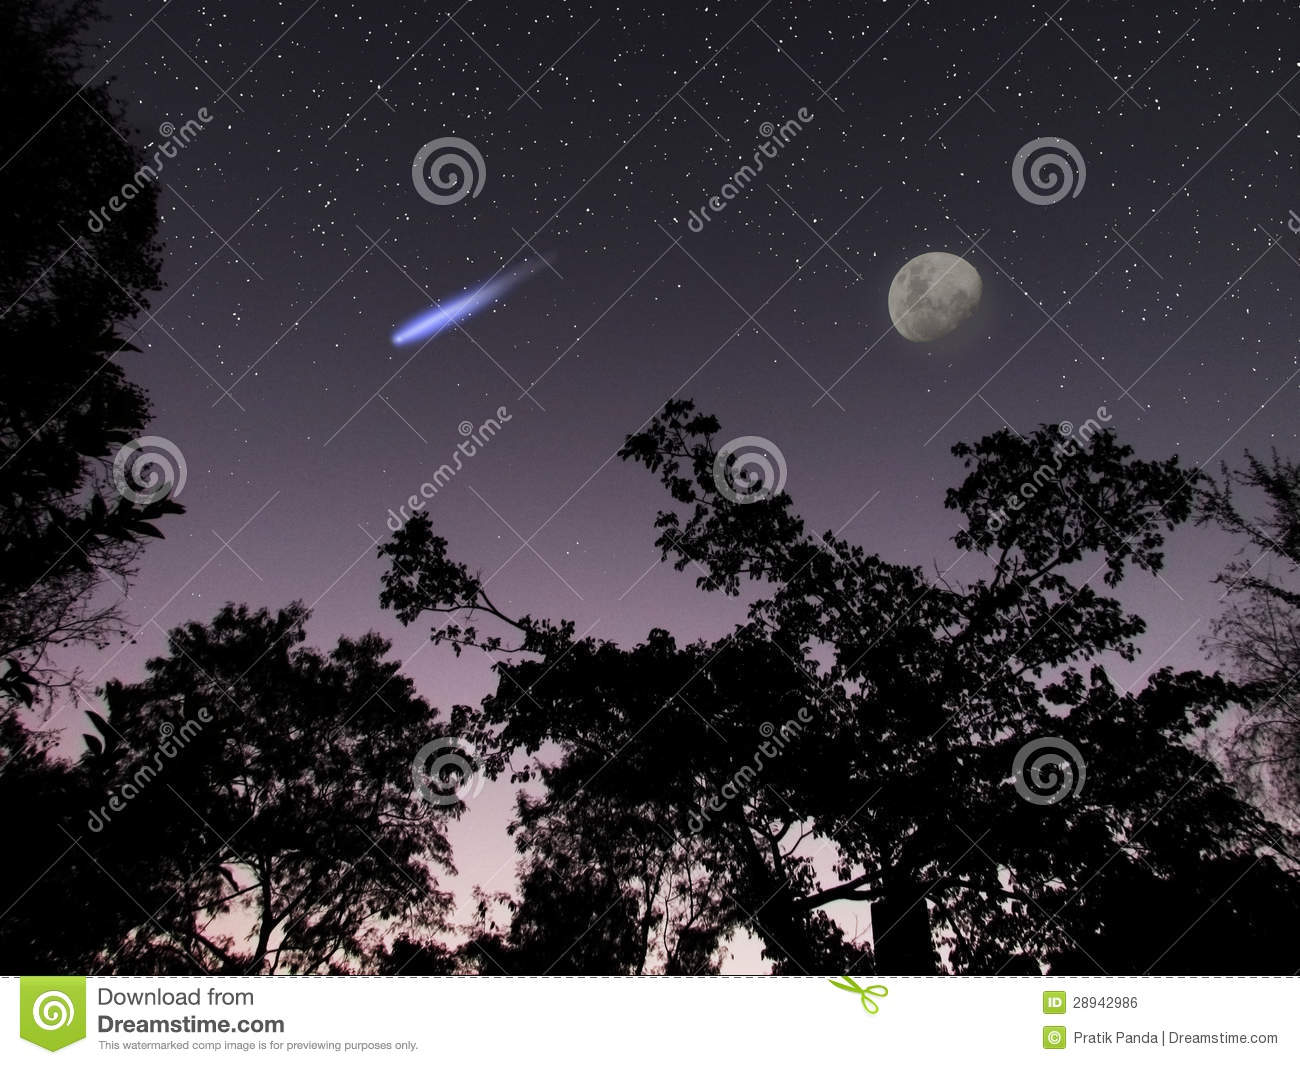 Asteroid or comet DA14 in the night sky scene